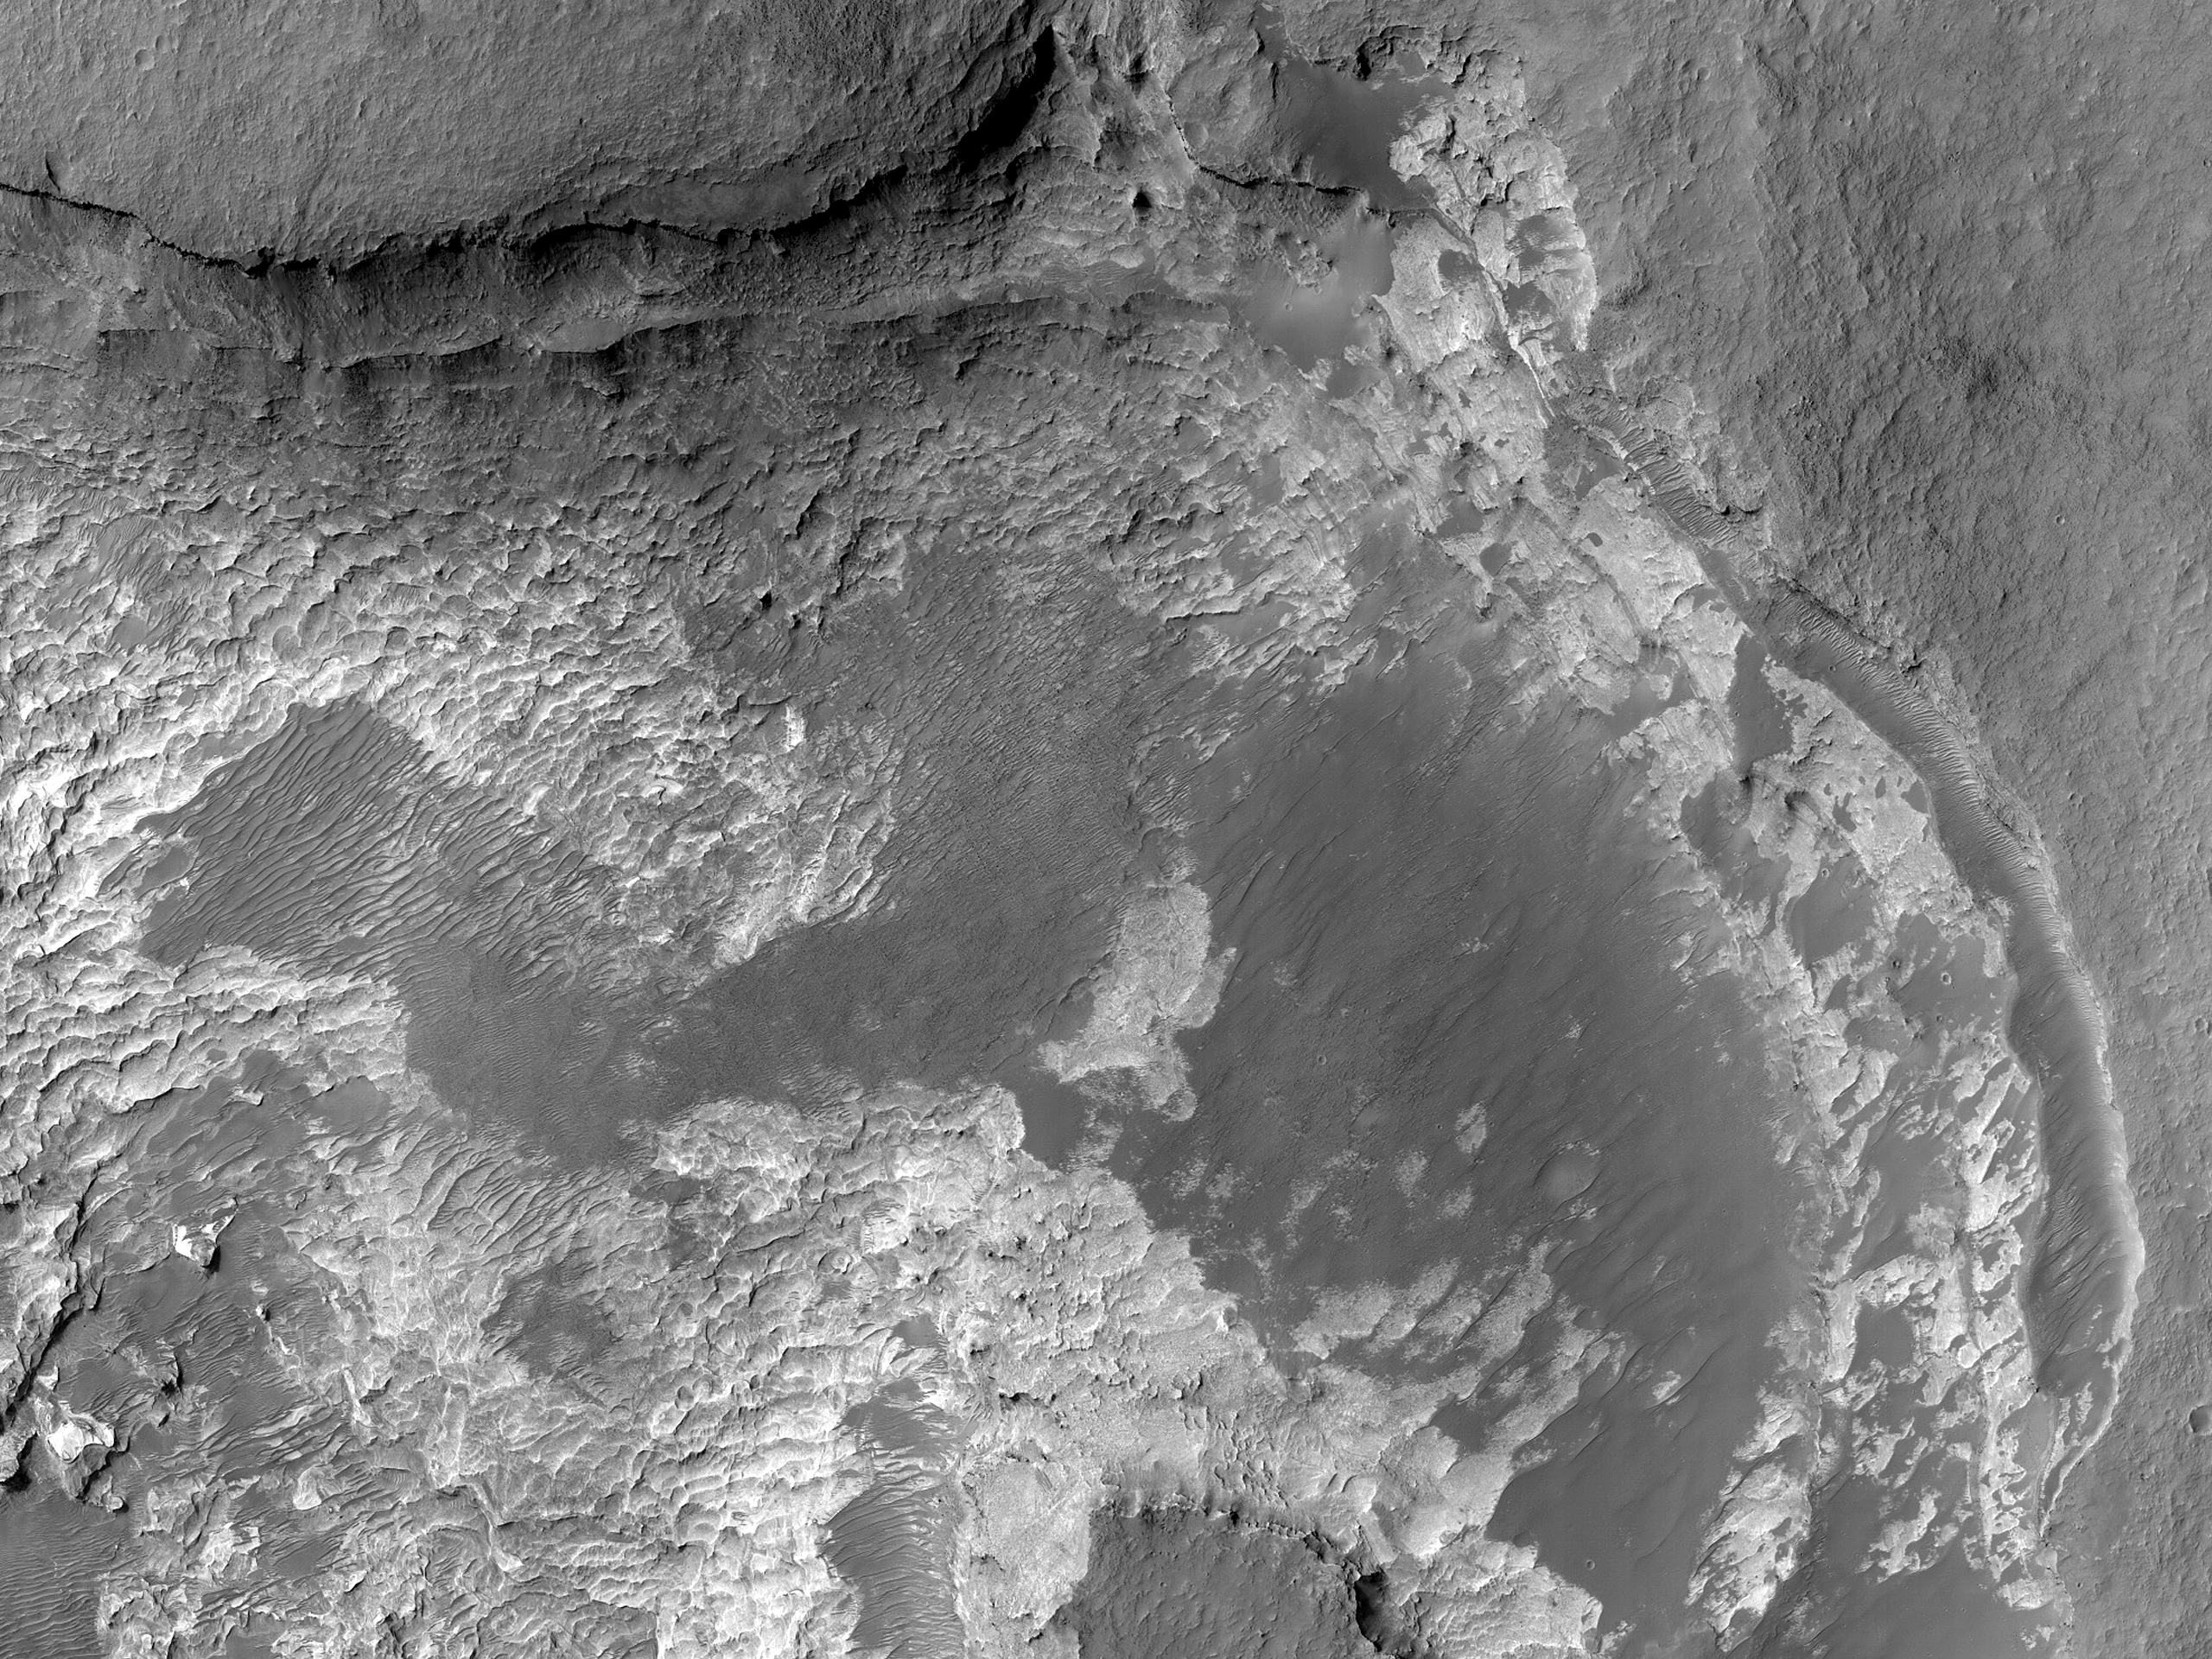 Layers in Niesten Crater